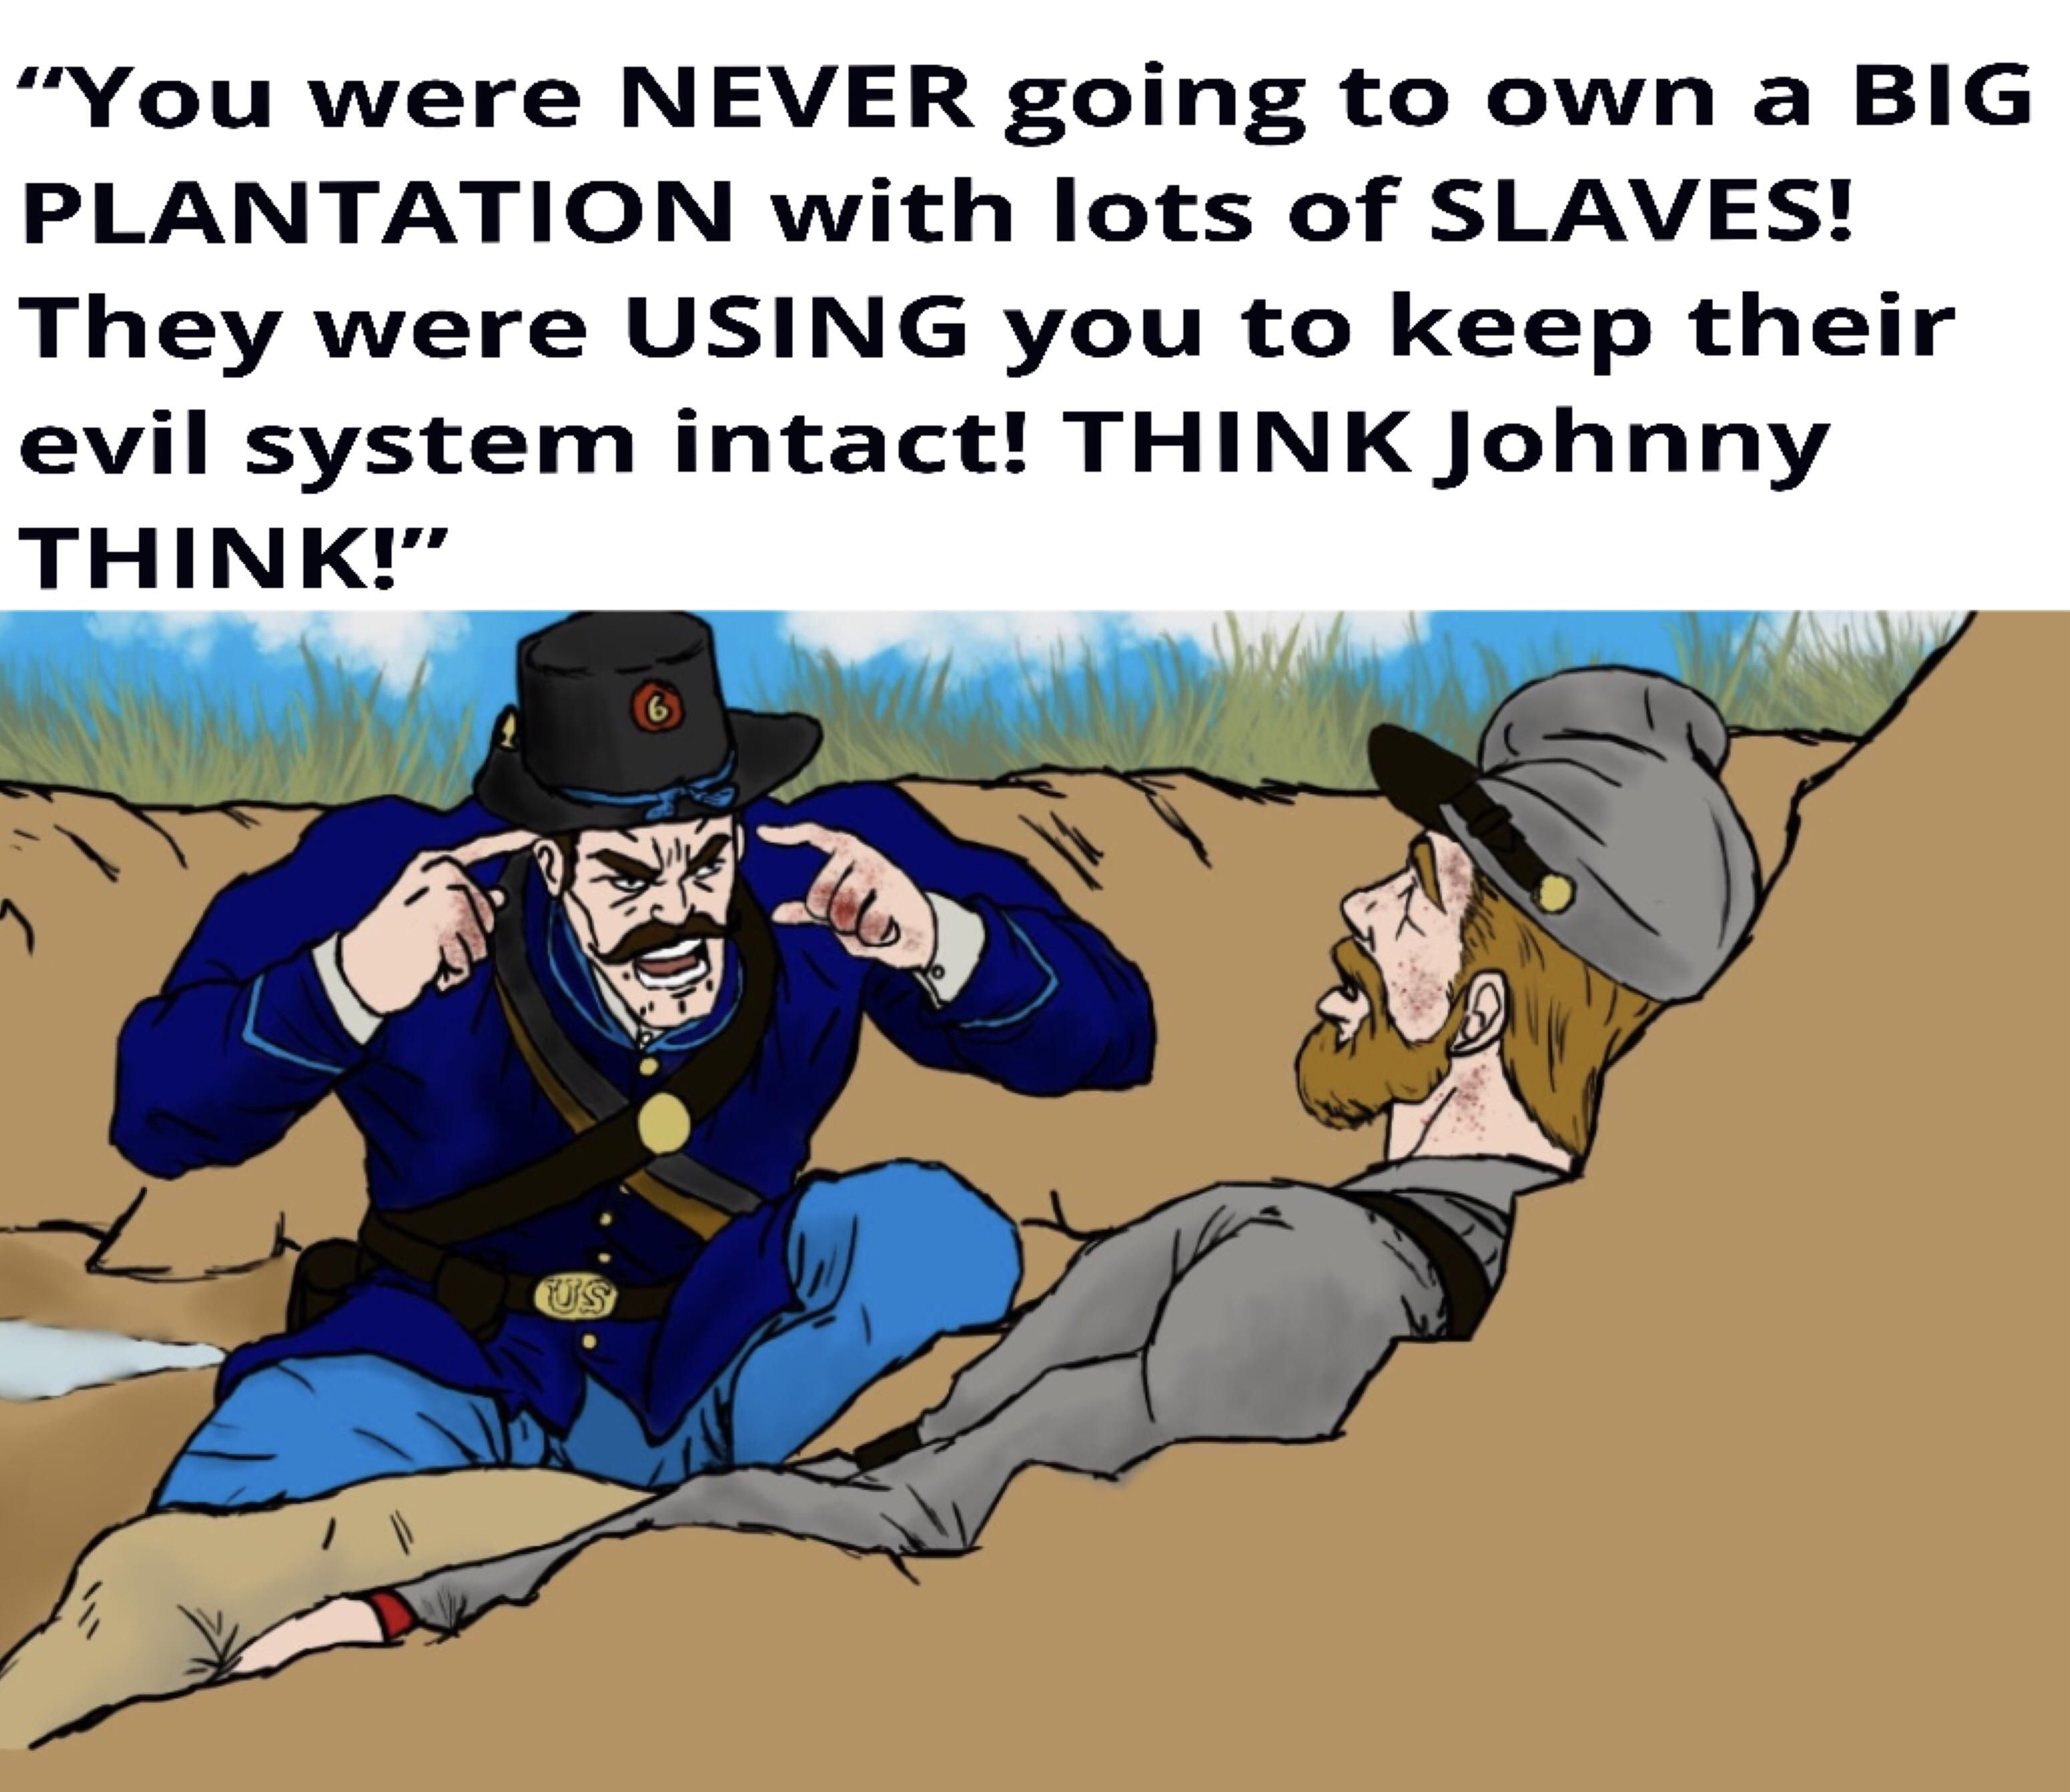 The vast majority of Confederate troops never owned a slave. Yet they fought and died to preserve slavery.